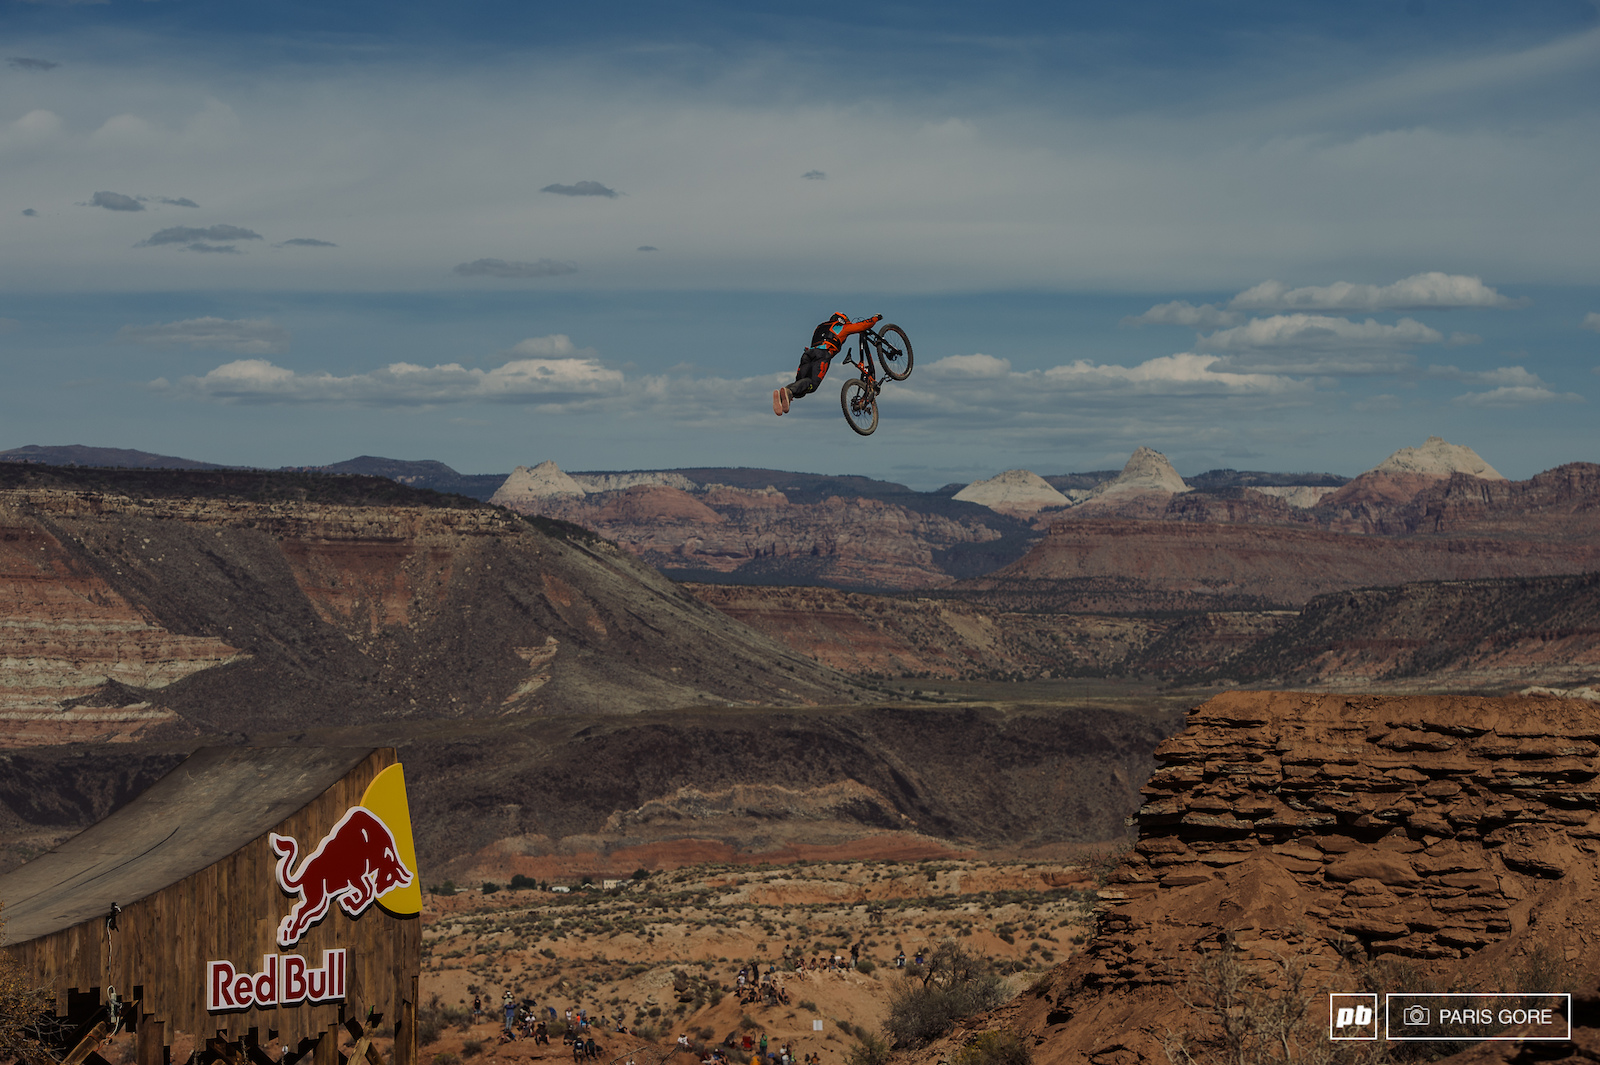 Same Renyolds superman over the canyon gap.